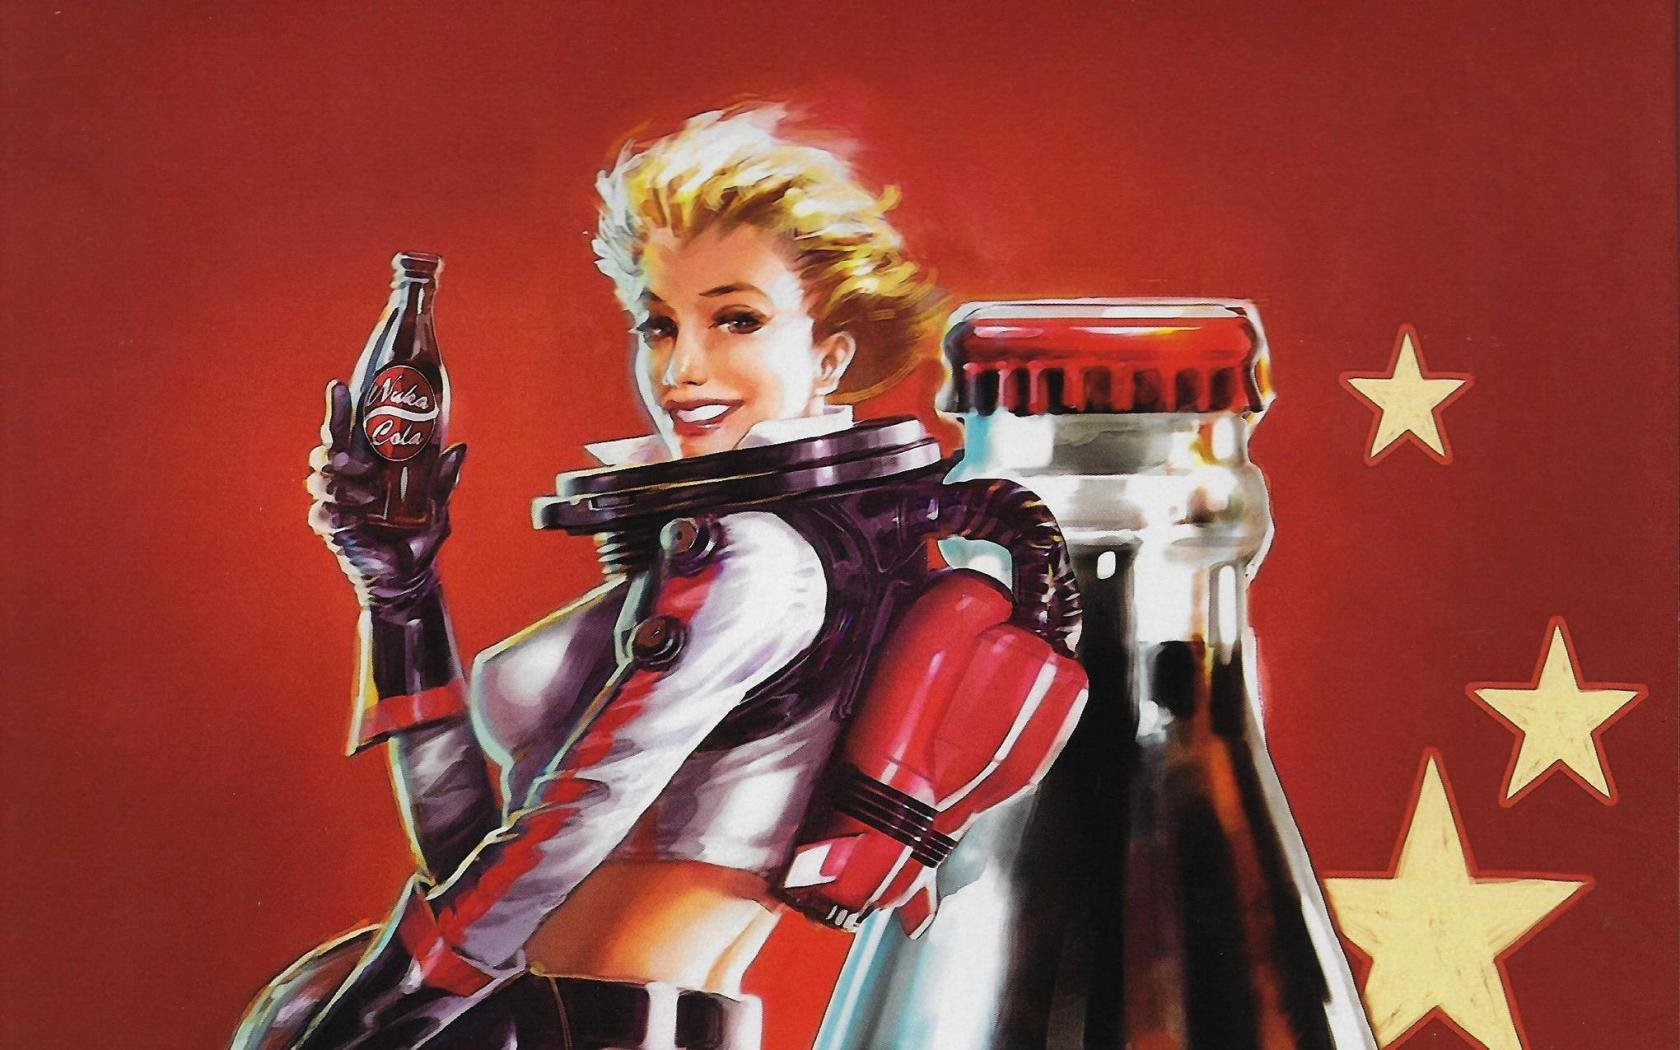 Free Download Nuka Cola Wallpaper Id 207369 Hd 1680x1050 For Computer